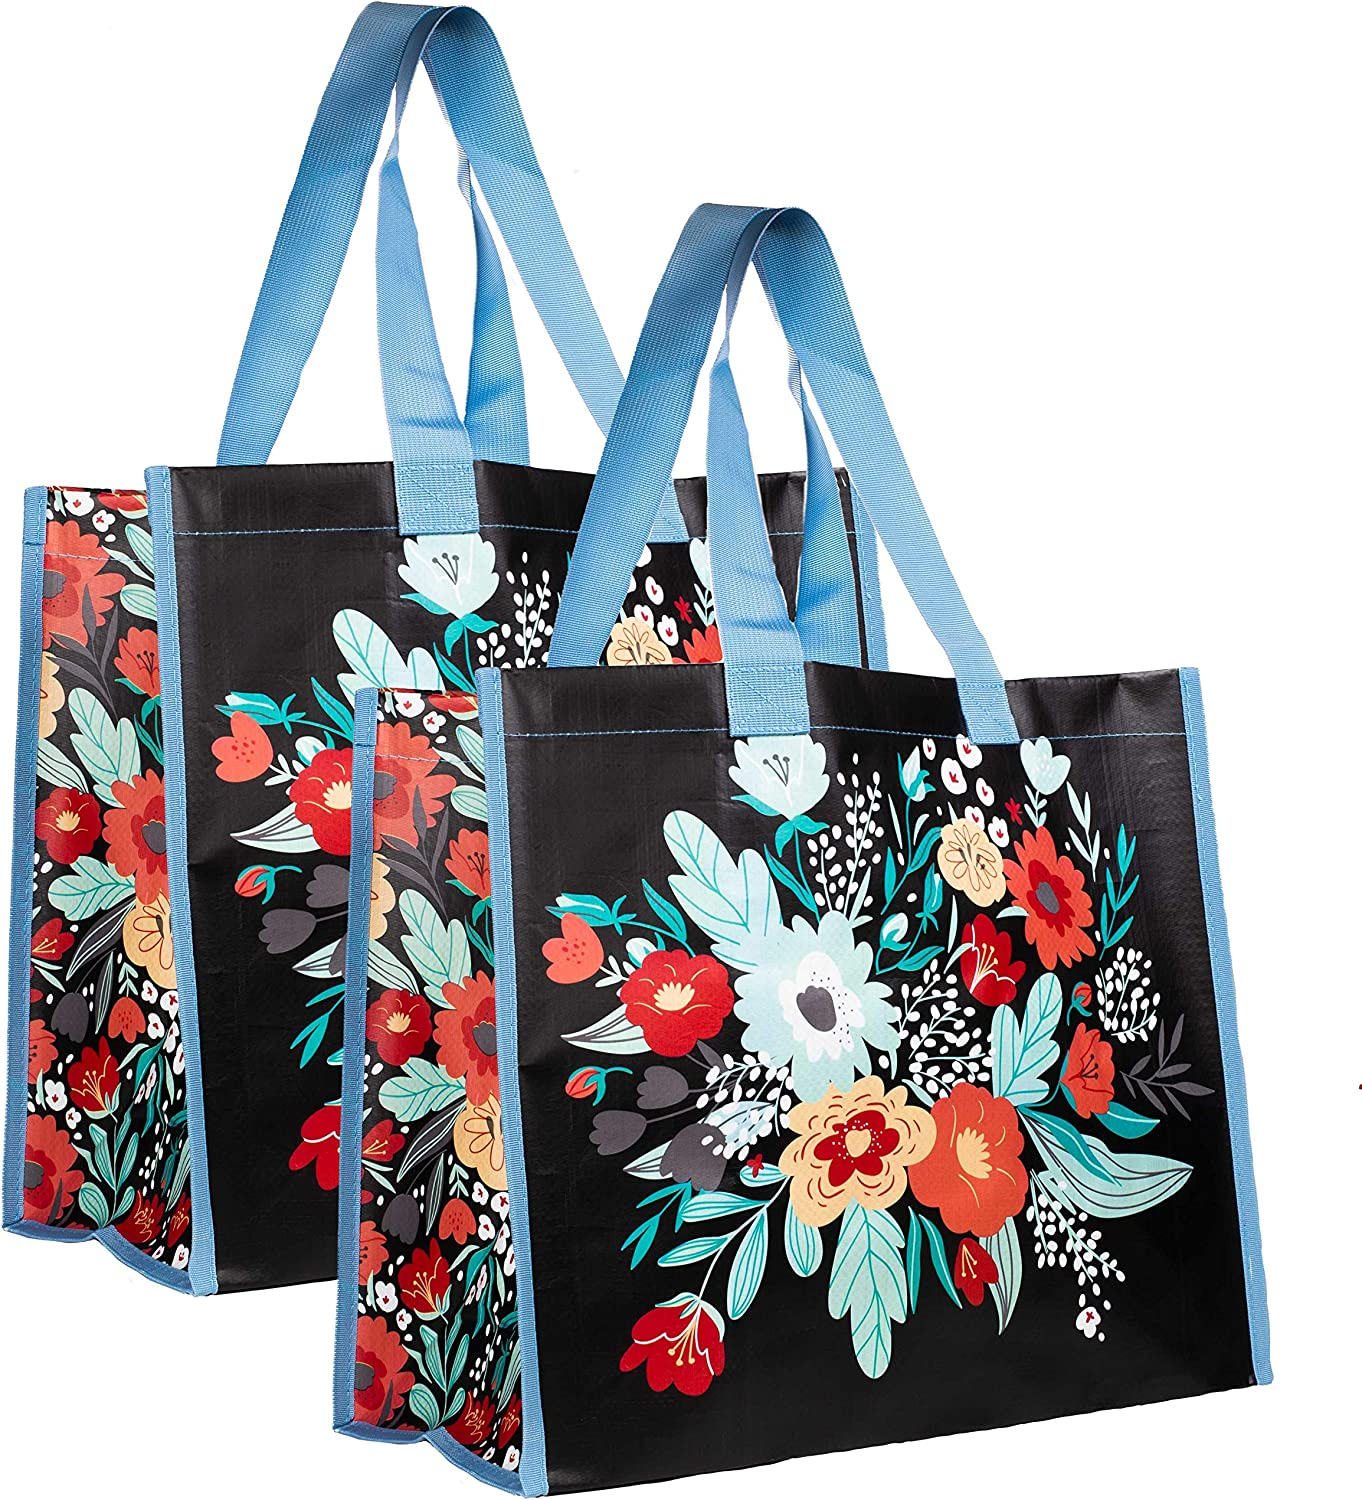 Oversize Grocery/Produce Bag Set of 2, Heavy Duty Eco Market Shopping Bags, Foldable, Packable, Reusable Tote with Durable Shoulder Straps, Folk Floral